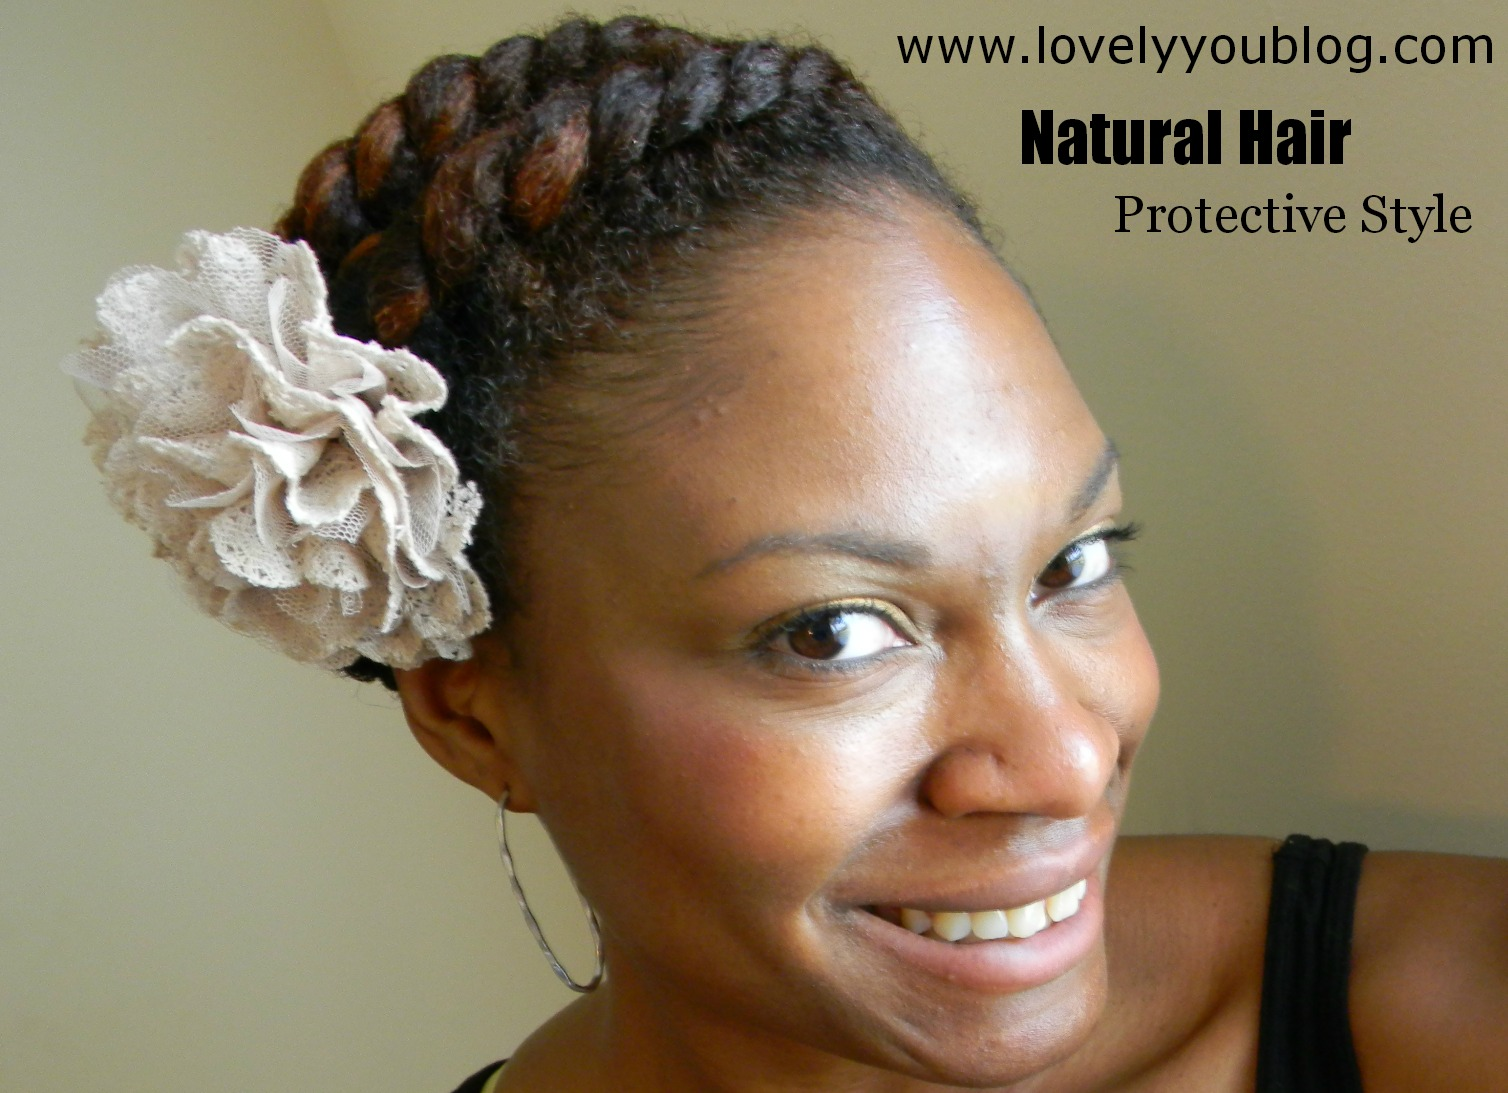 Protective Natural Hair Styles: Protective Style #1